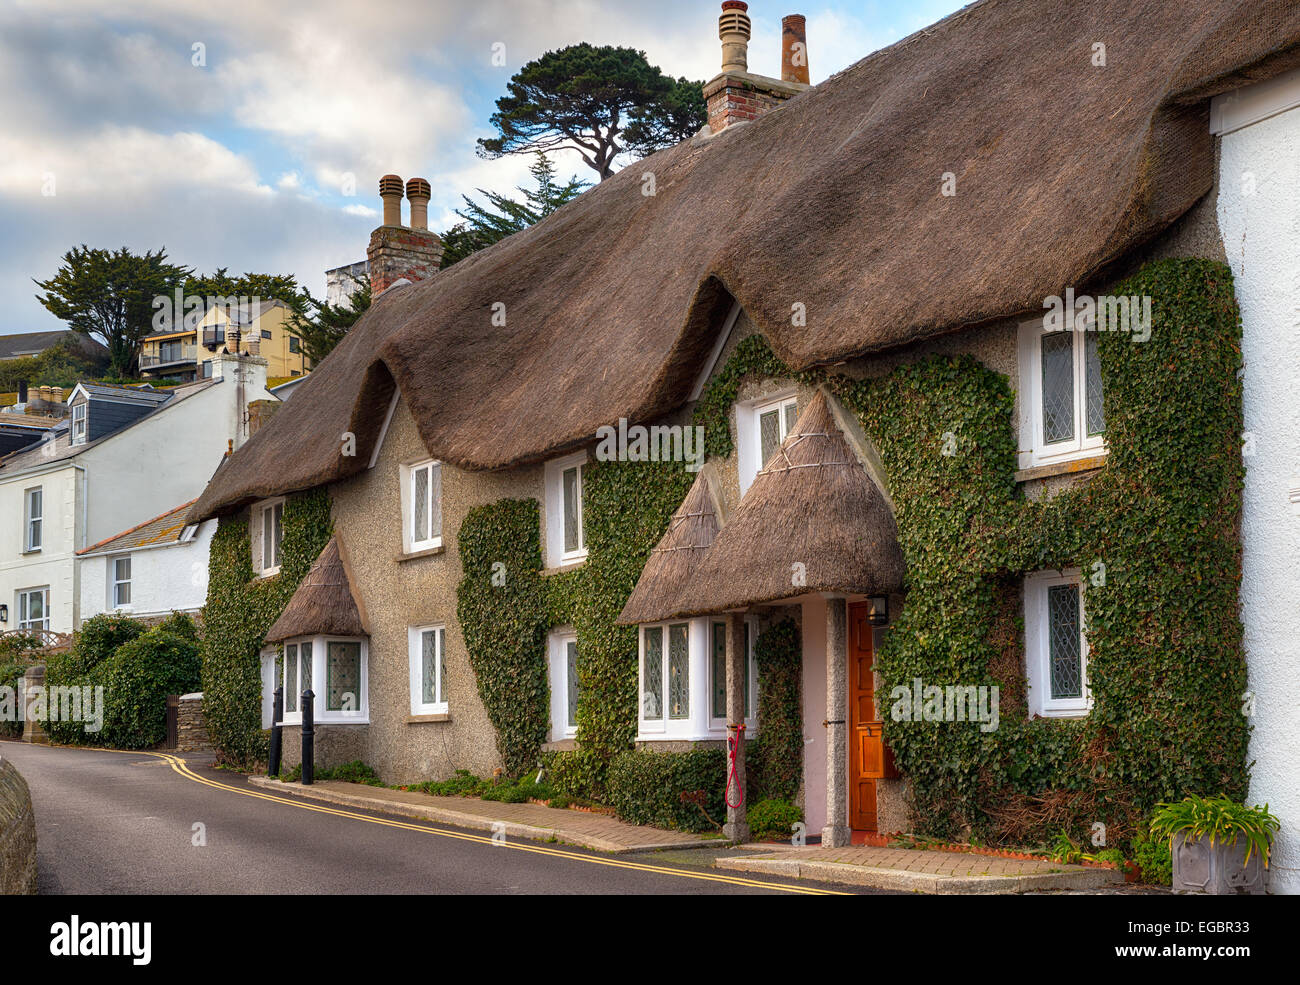 Pretty thatched cottages at the seaside town of St Mawes near Falmouth in Cornwall - Stock Image